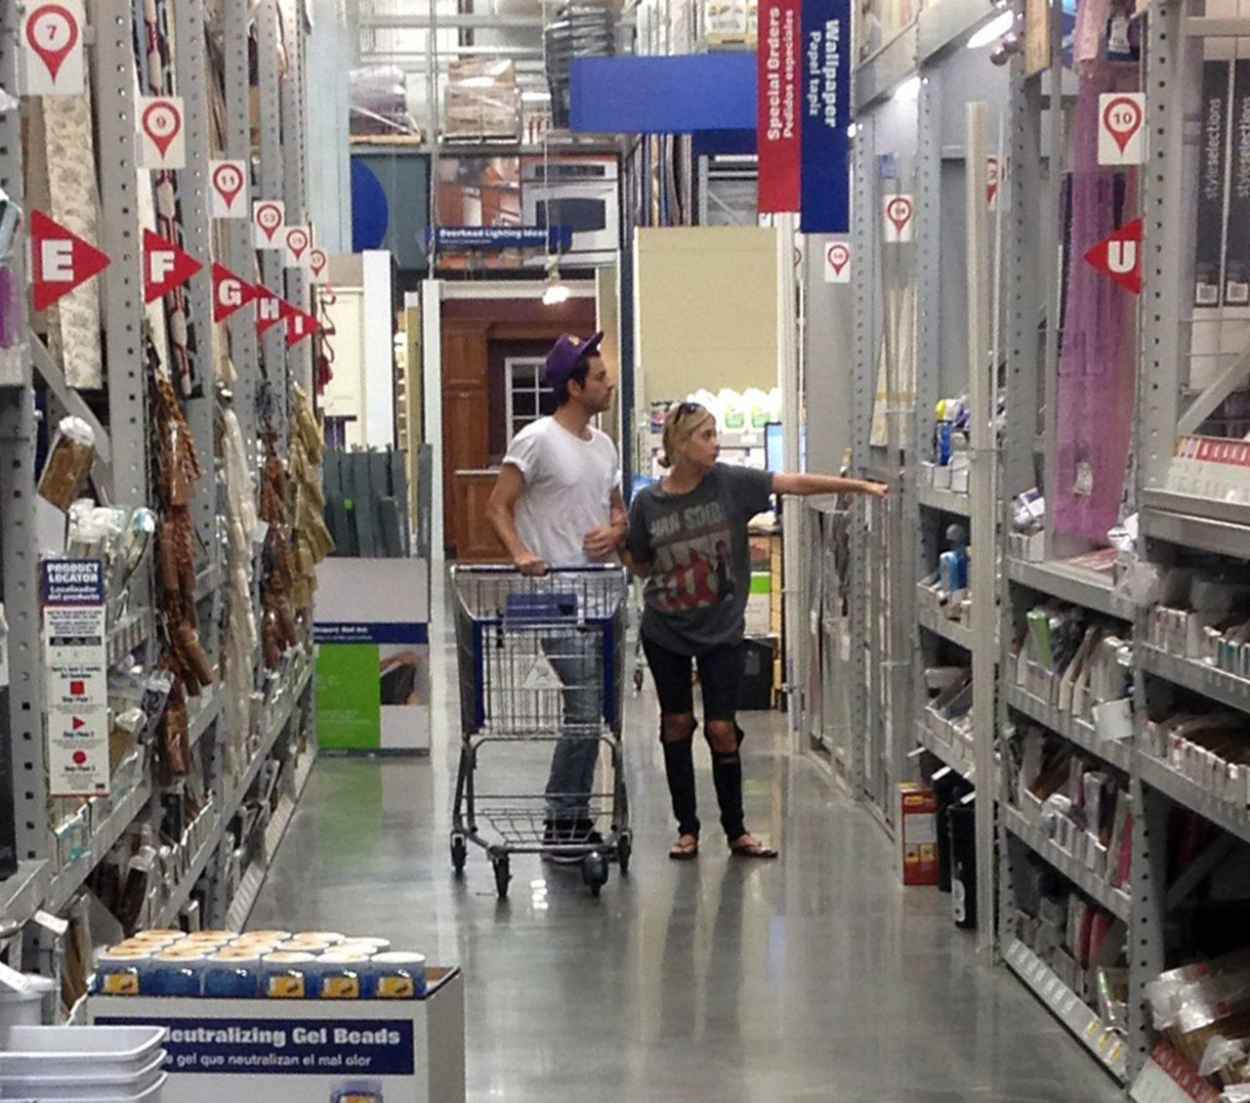 Use Lowe's Store Locator to find your nearest Lowe's Home Improvement and start shopping for appliances, tools, cabinets, counter tops, paint and more!